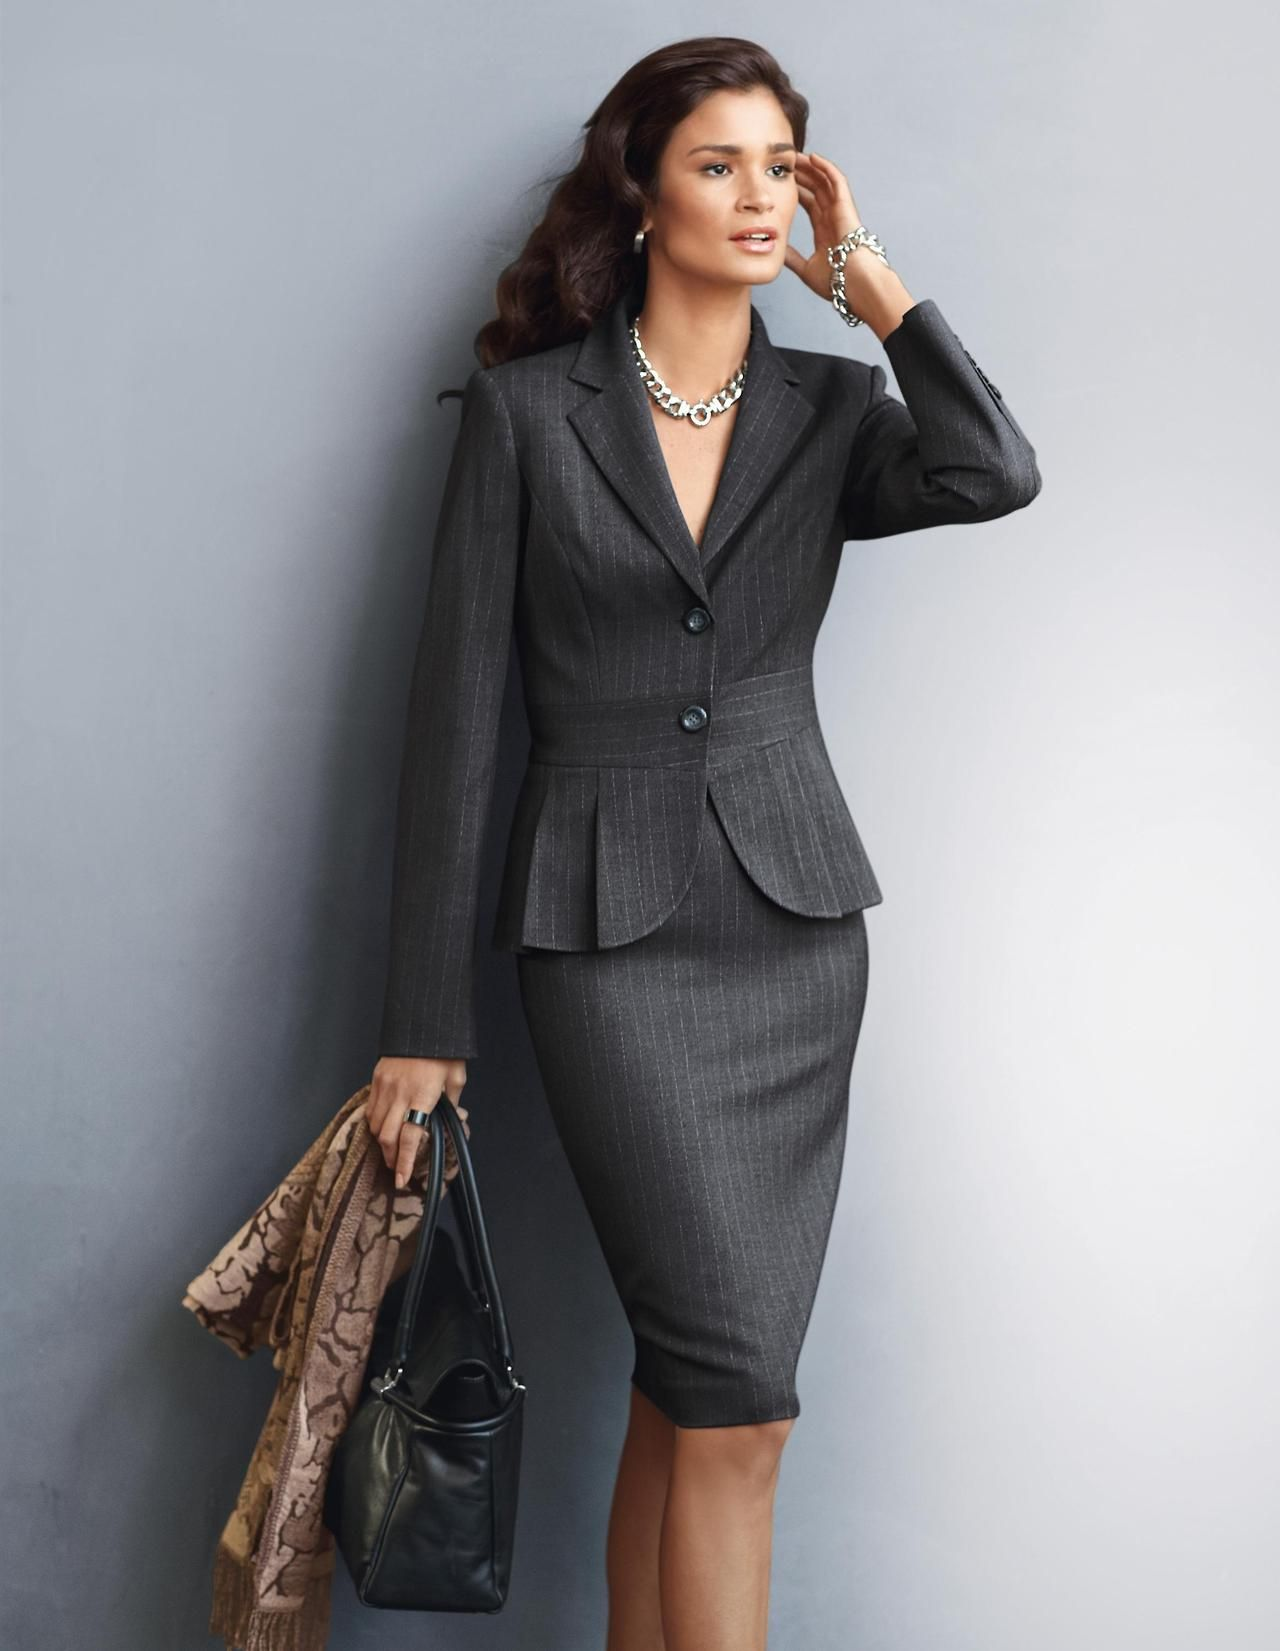 Classic pin striped suit. | Work fashion, Fashion, Business